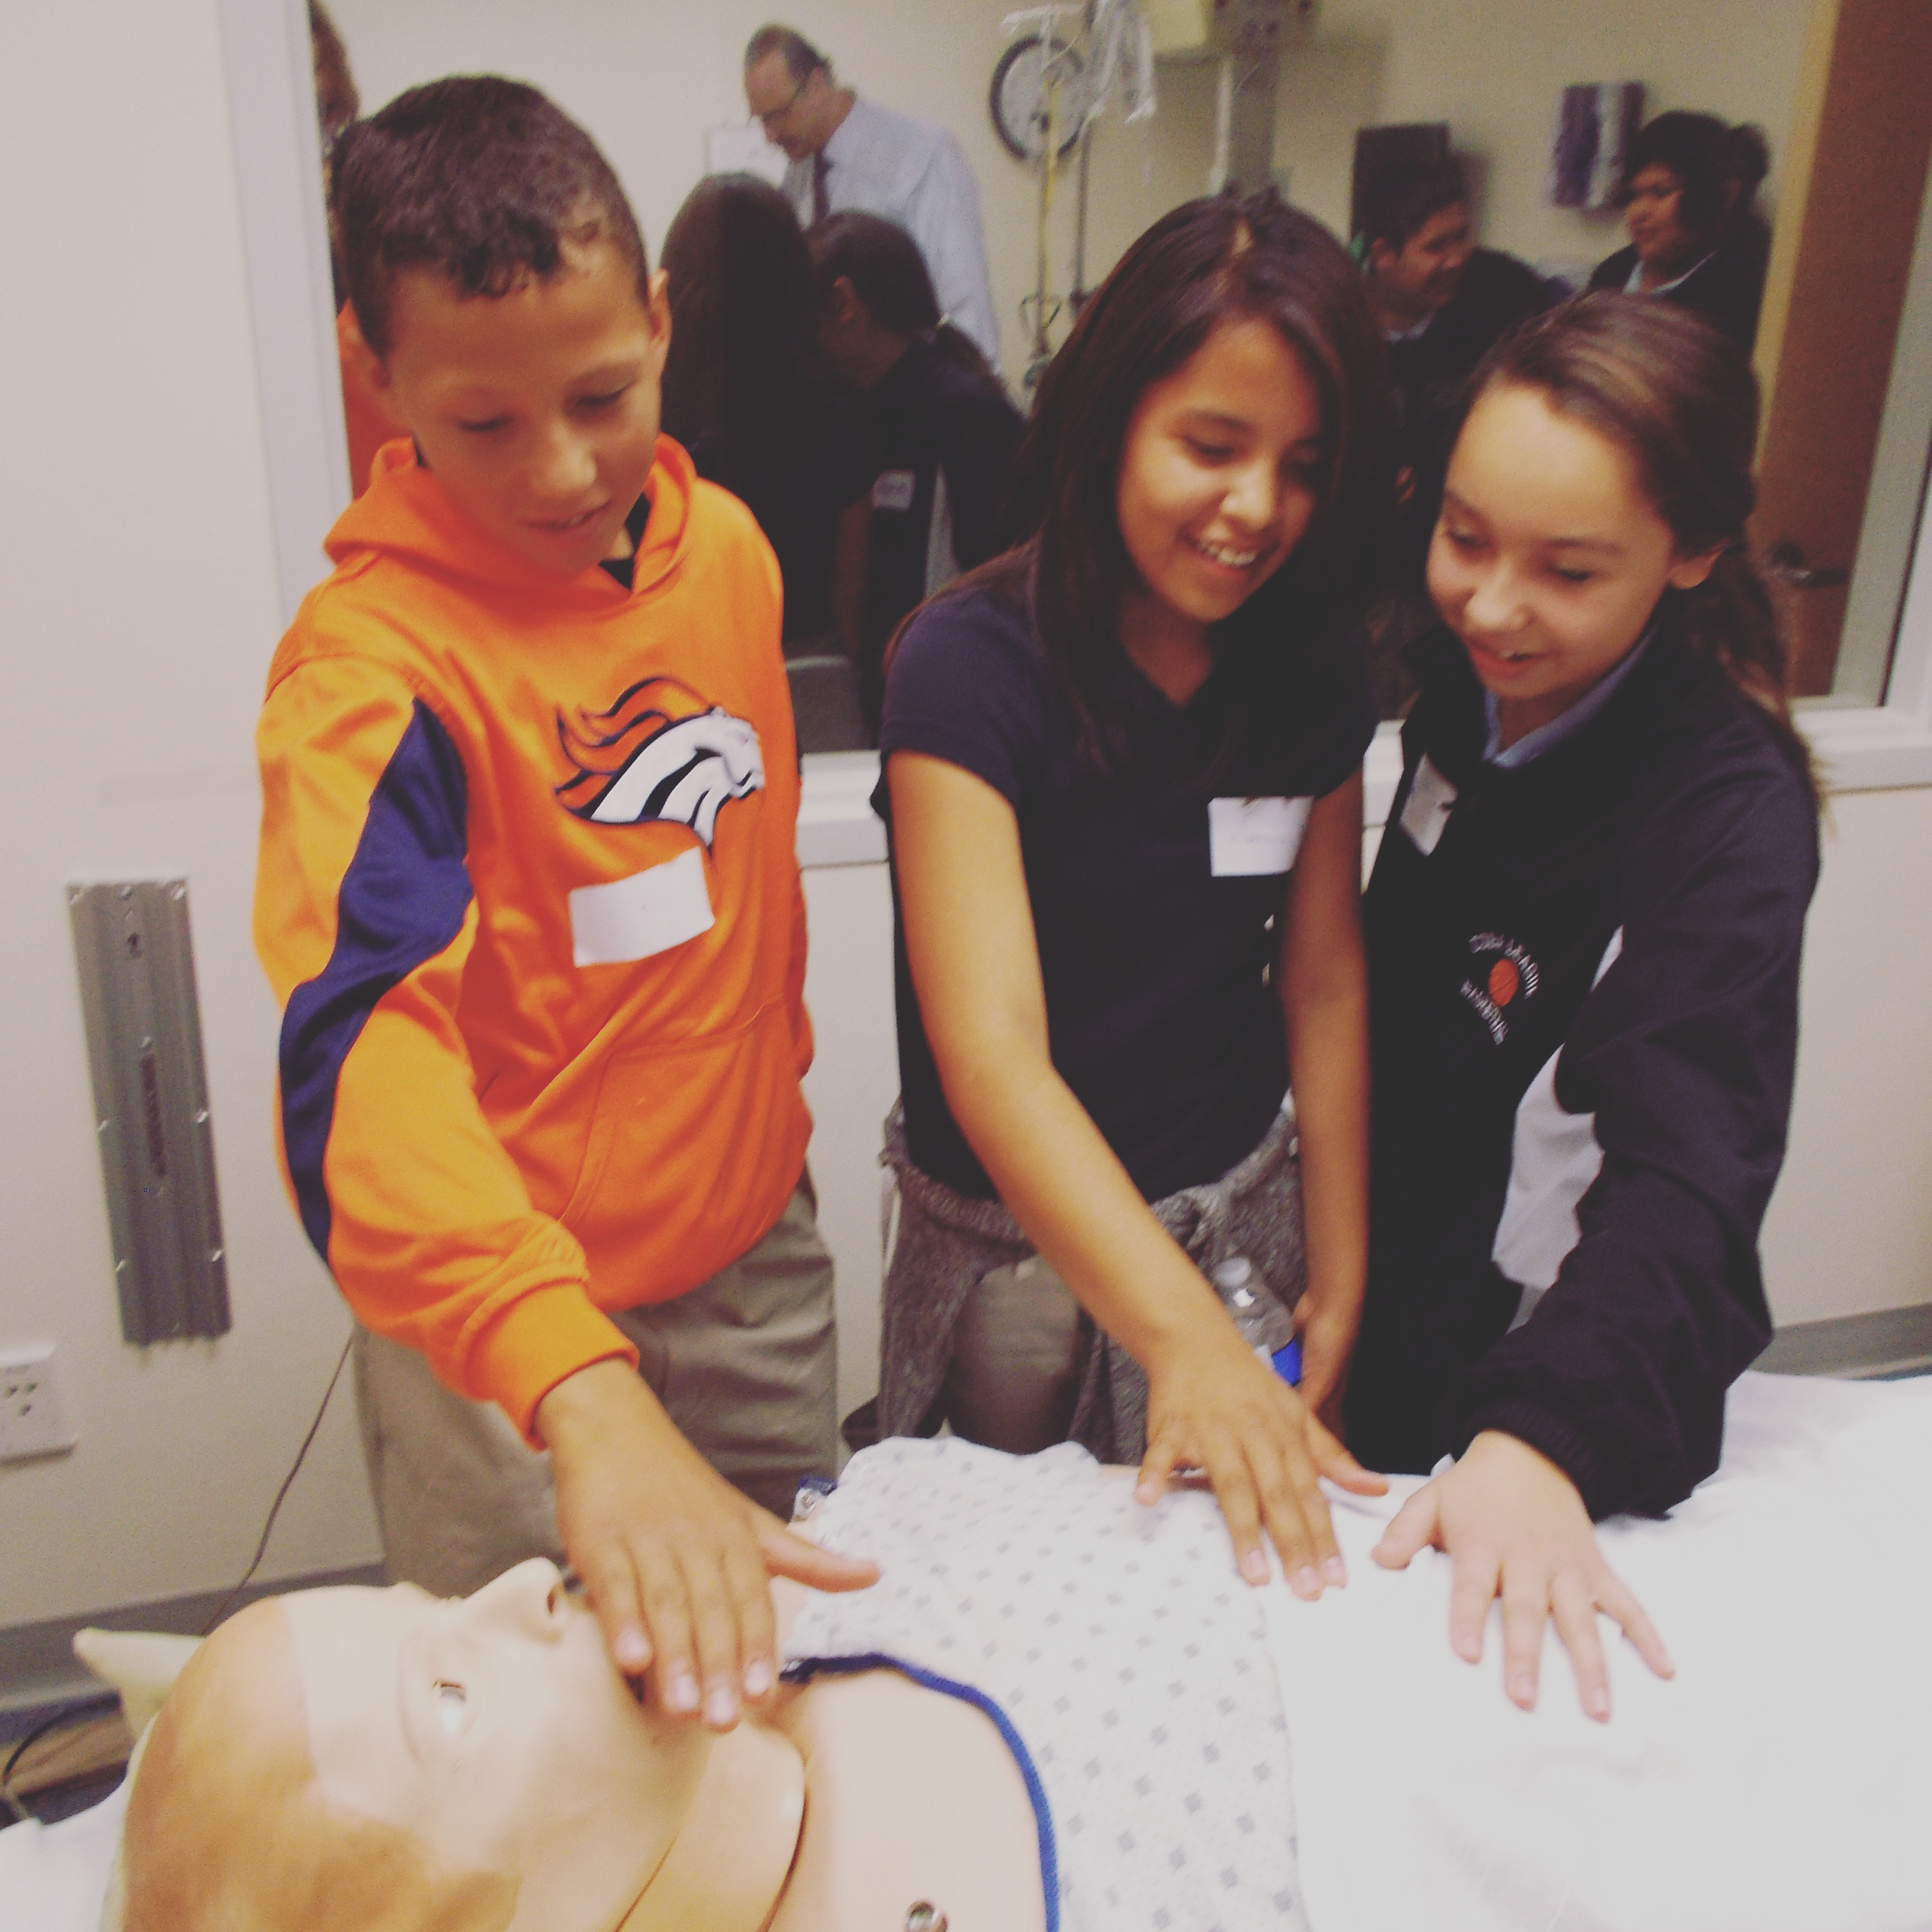 Cuba 7th grade students feel the mannequin's breath and heart beat